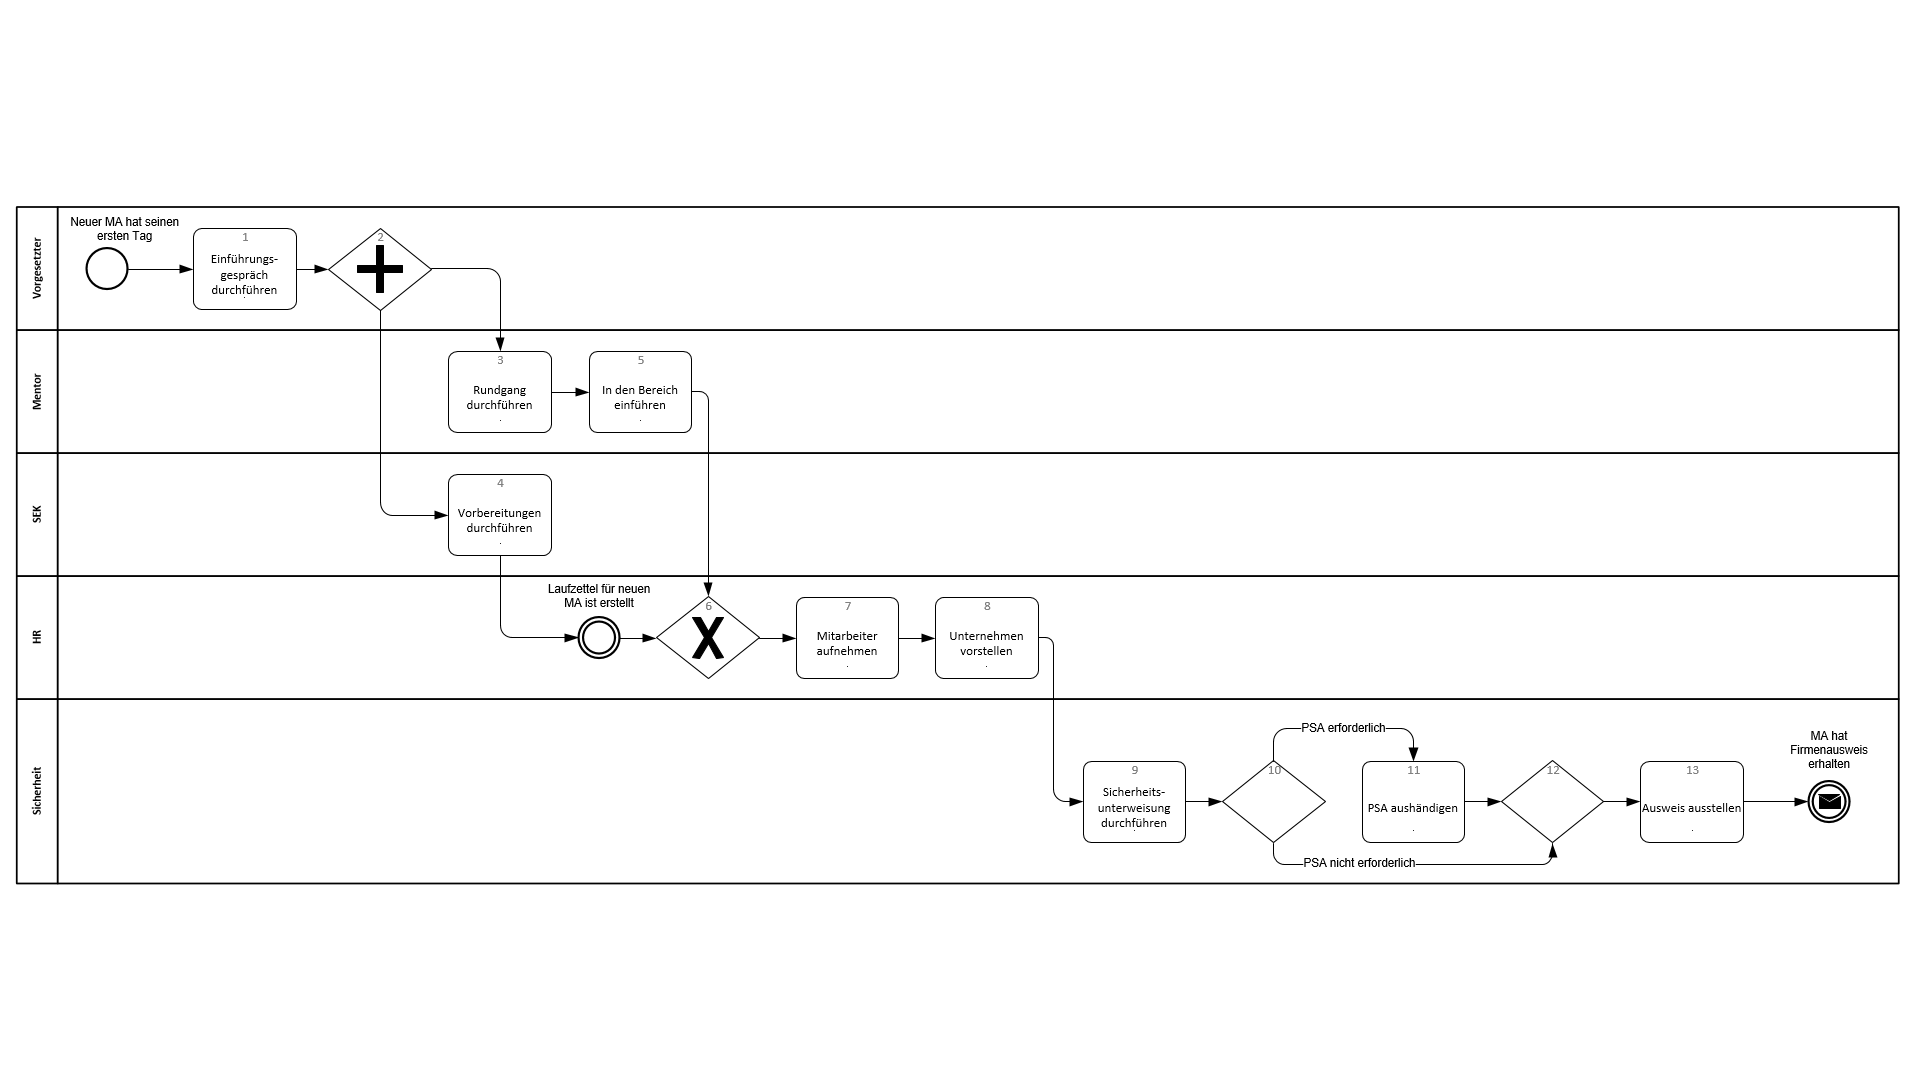 Modeling according to BPMN with viflow